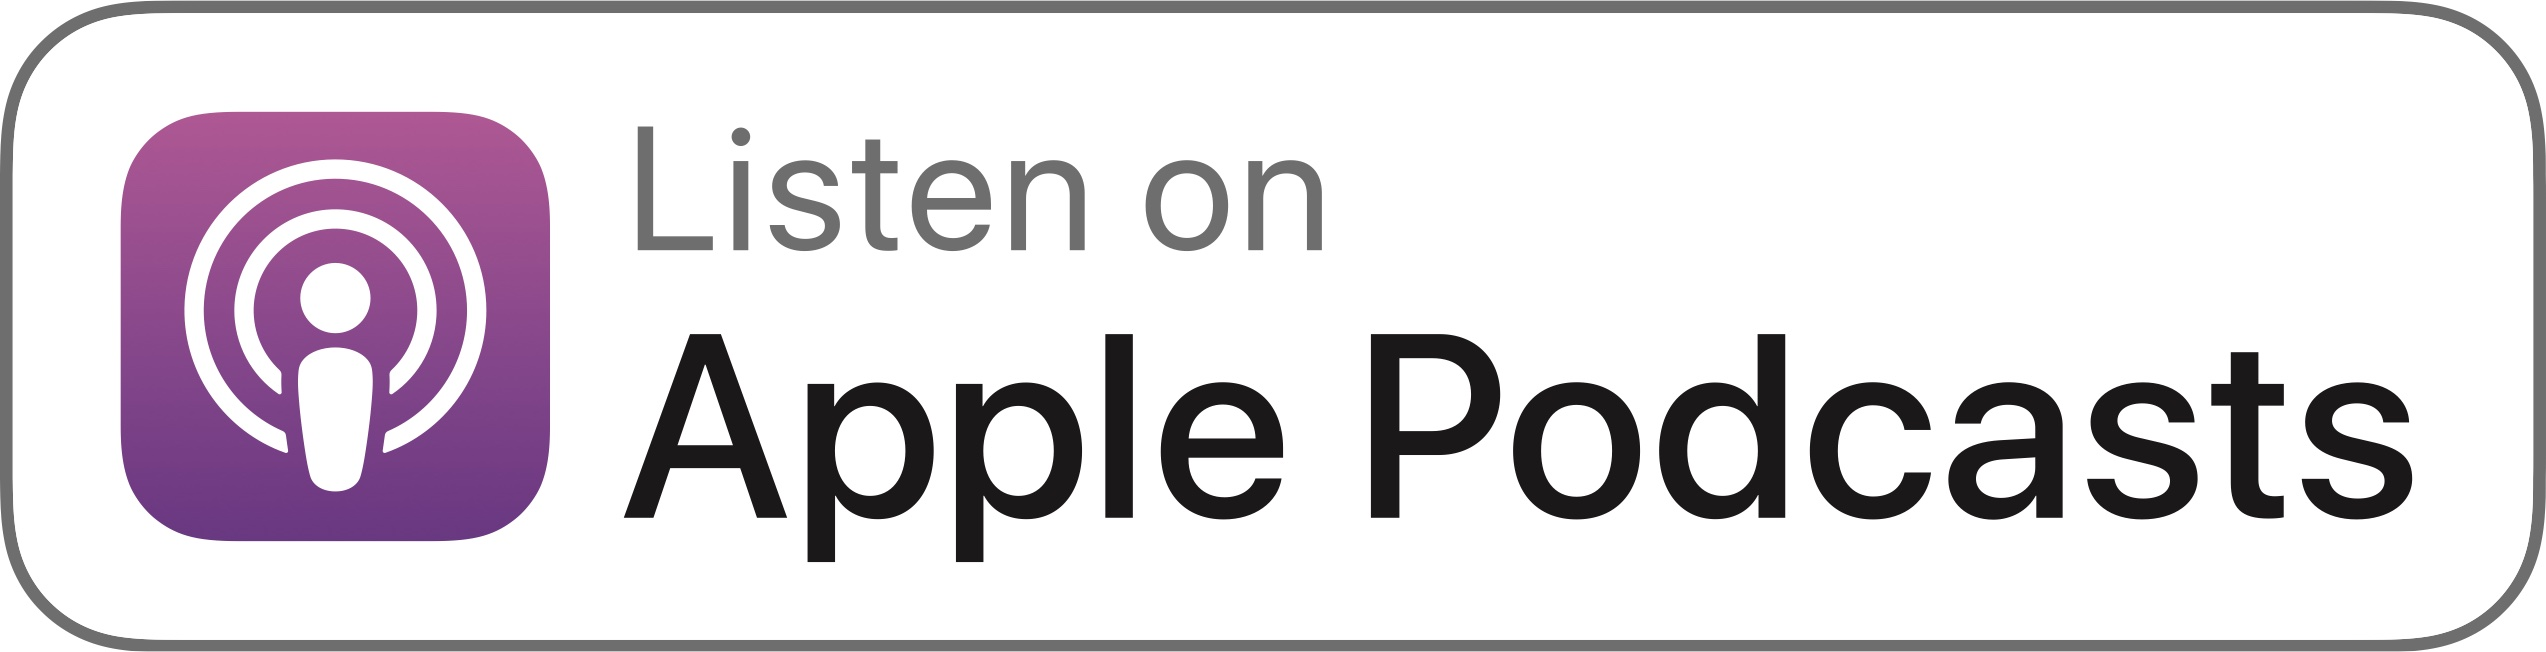 Logotipo Apple Podcast